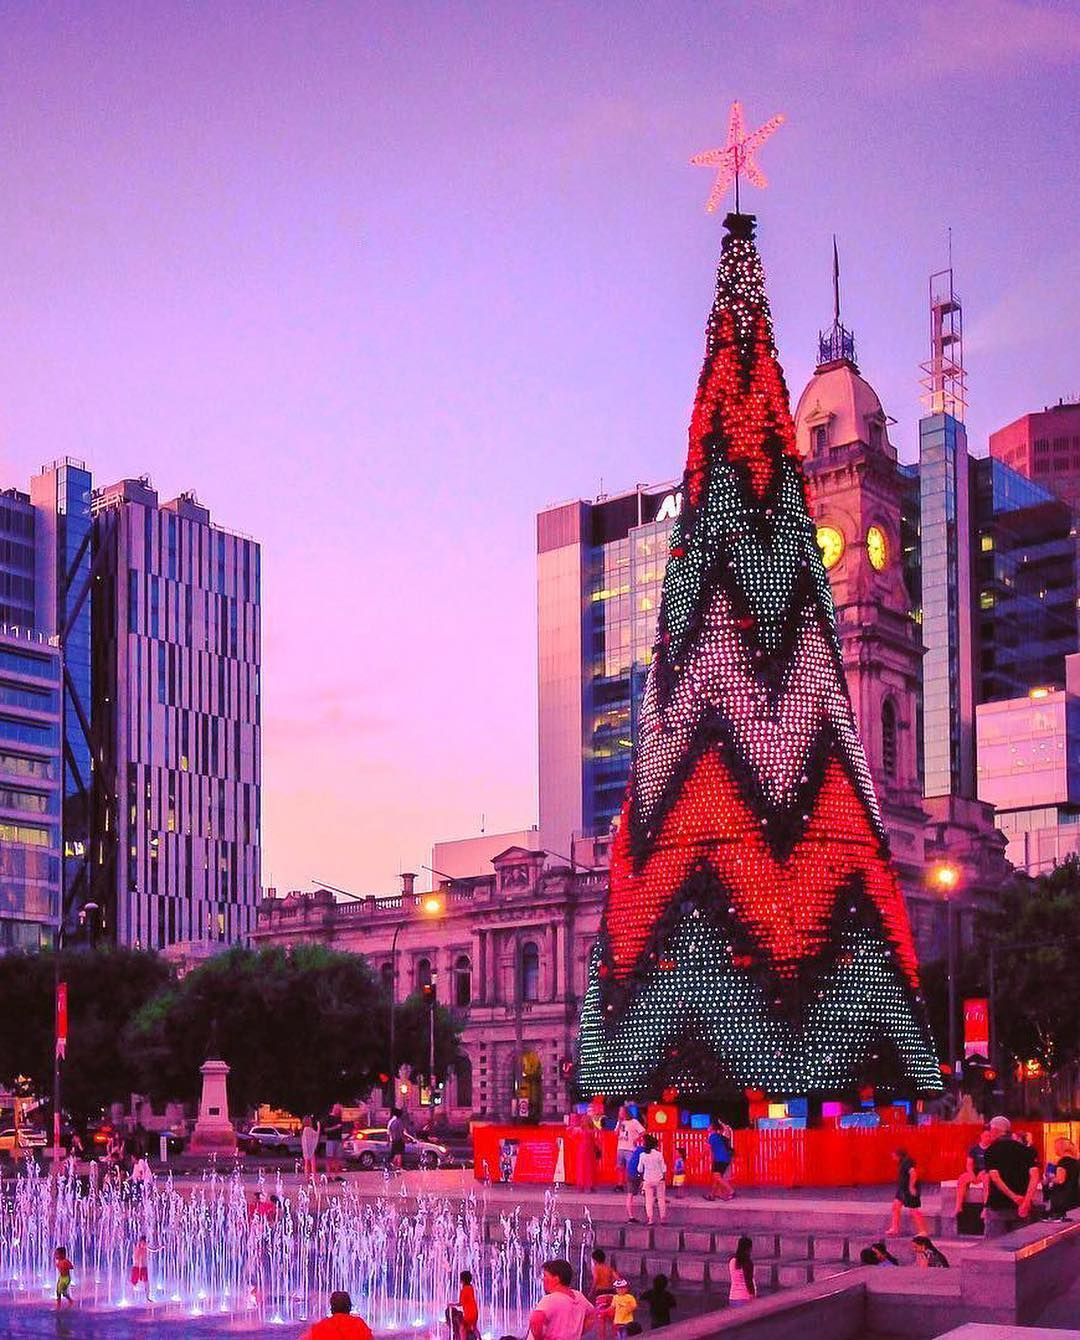 6 180 Likes 49 Comments South Australia Southaustralia On Instagram Merry Christmas Everyone Wishi South Australia Australia Adelaide South Australia